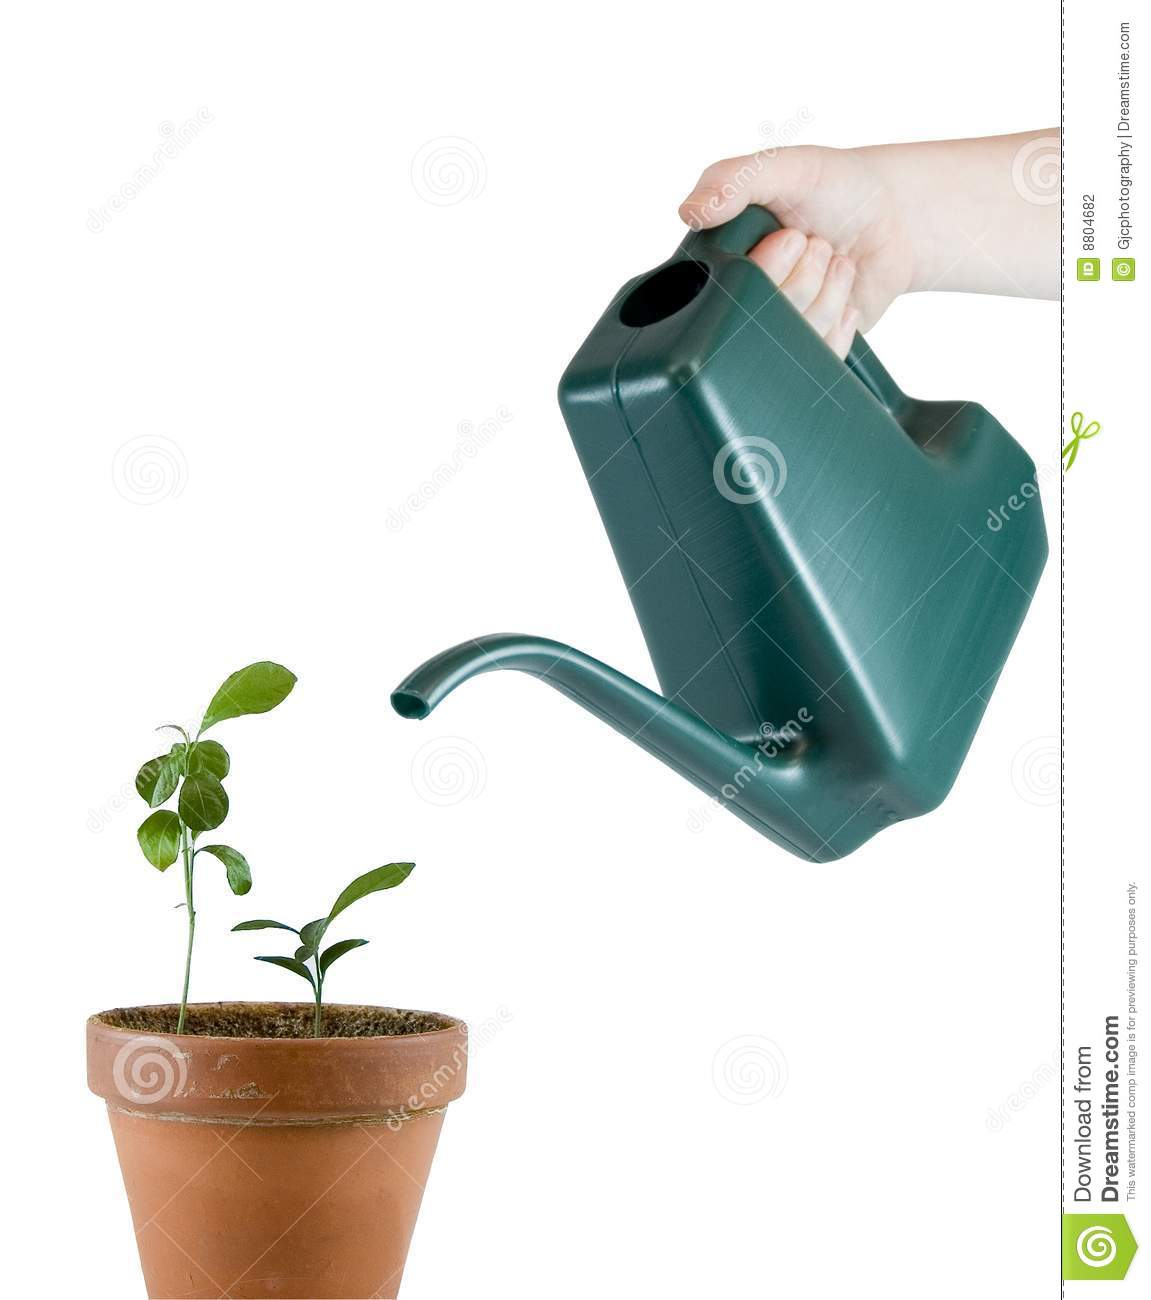 Plant Watering Cans Watering Can Pouring On Plants Stock Photo Image Of Leaf